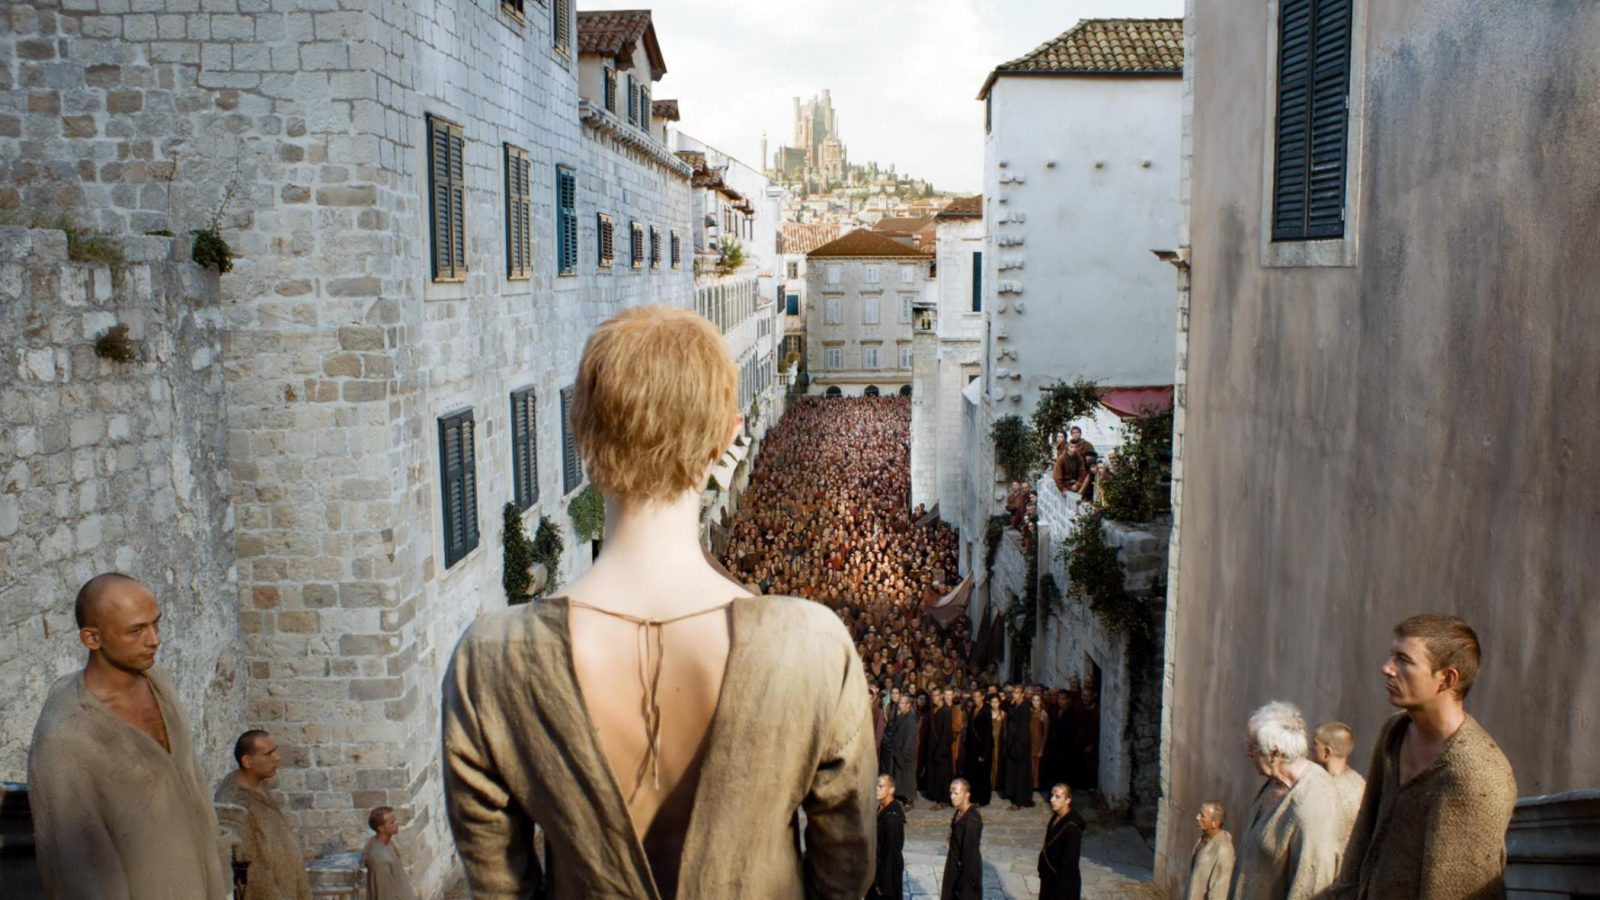 5 Game of Thrones Destinations Where the Summer Never Ends